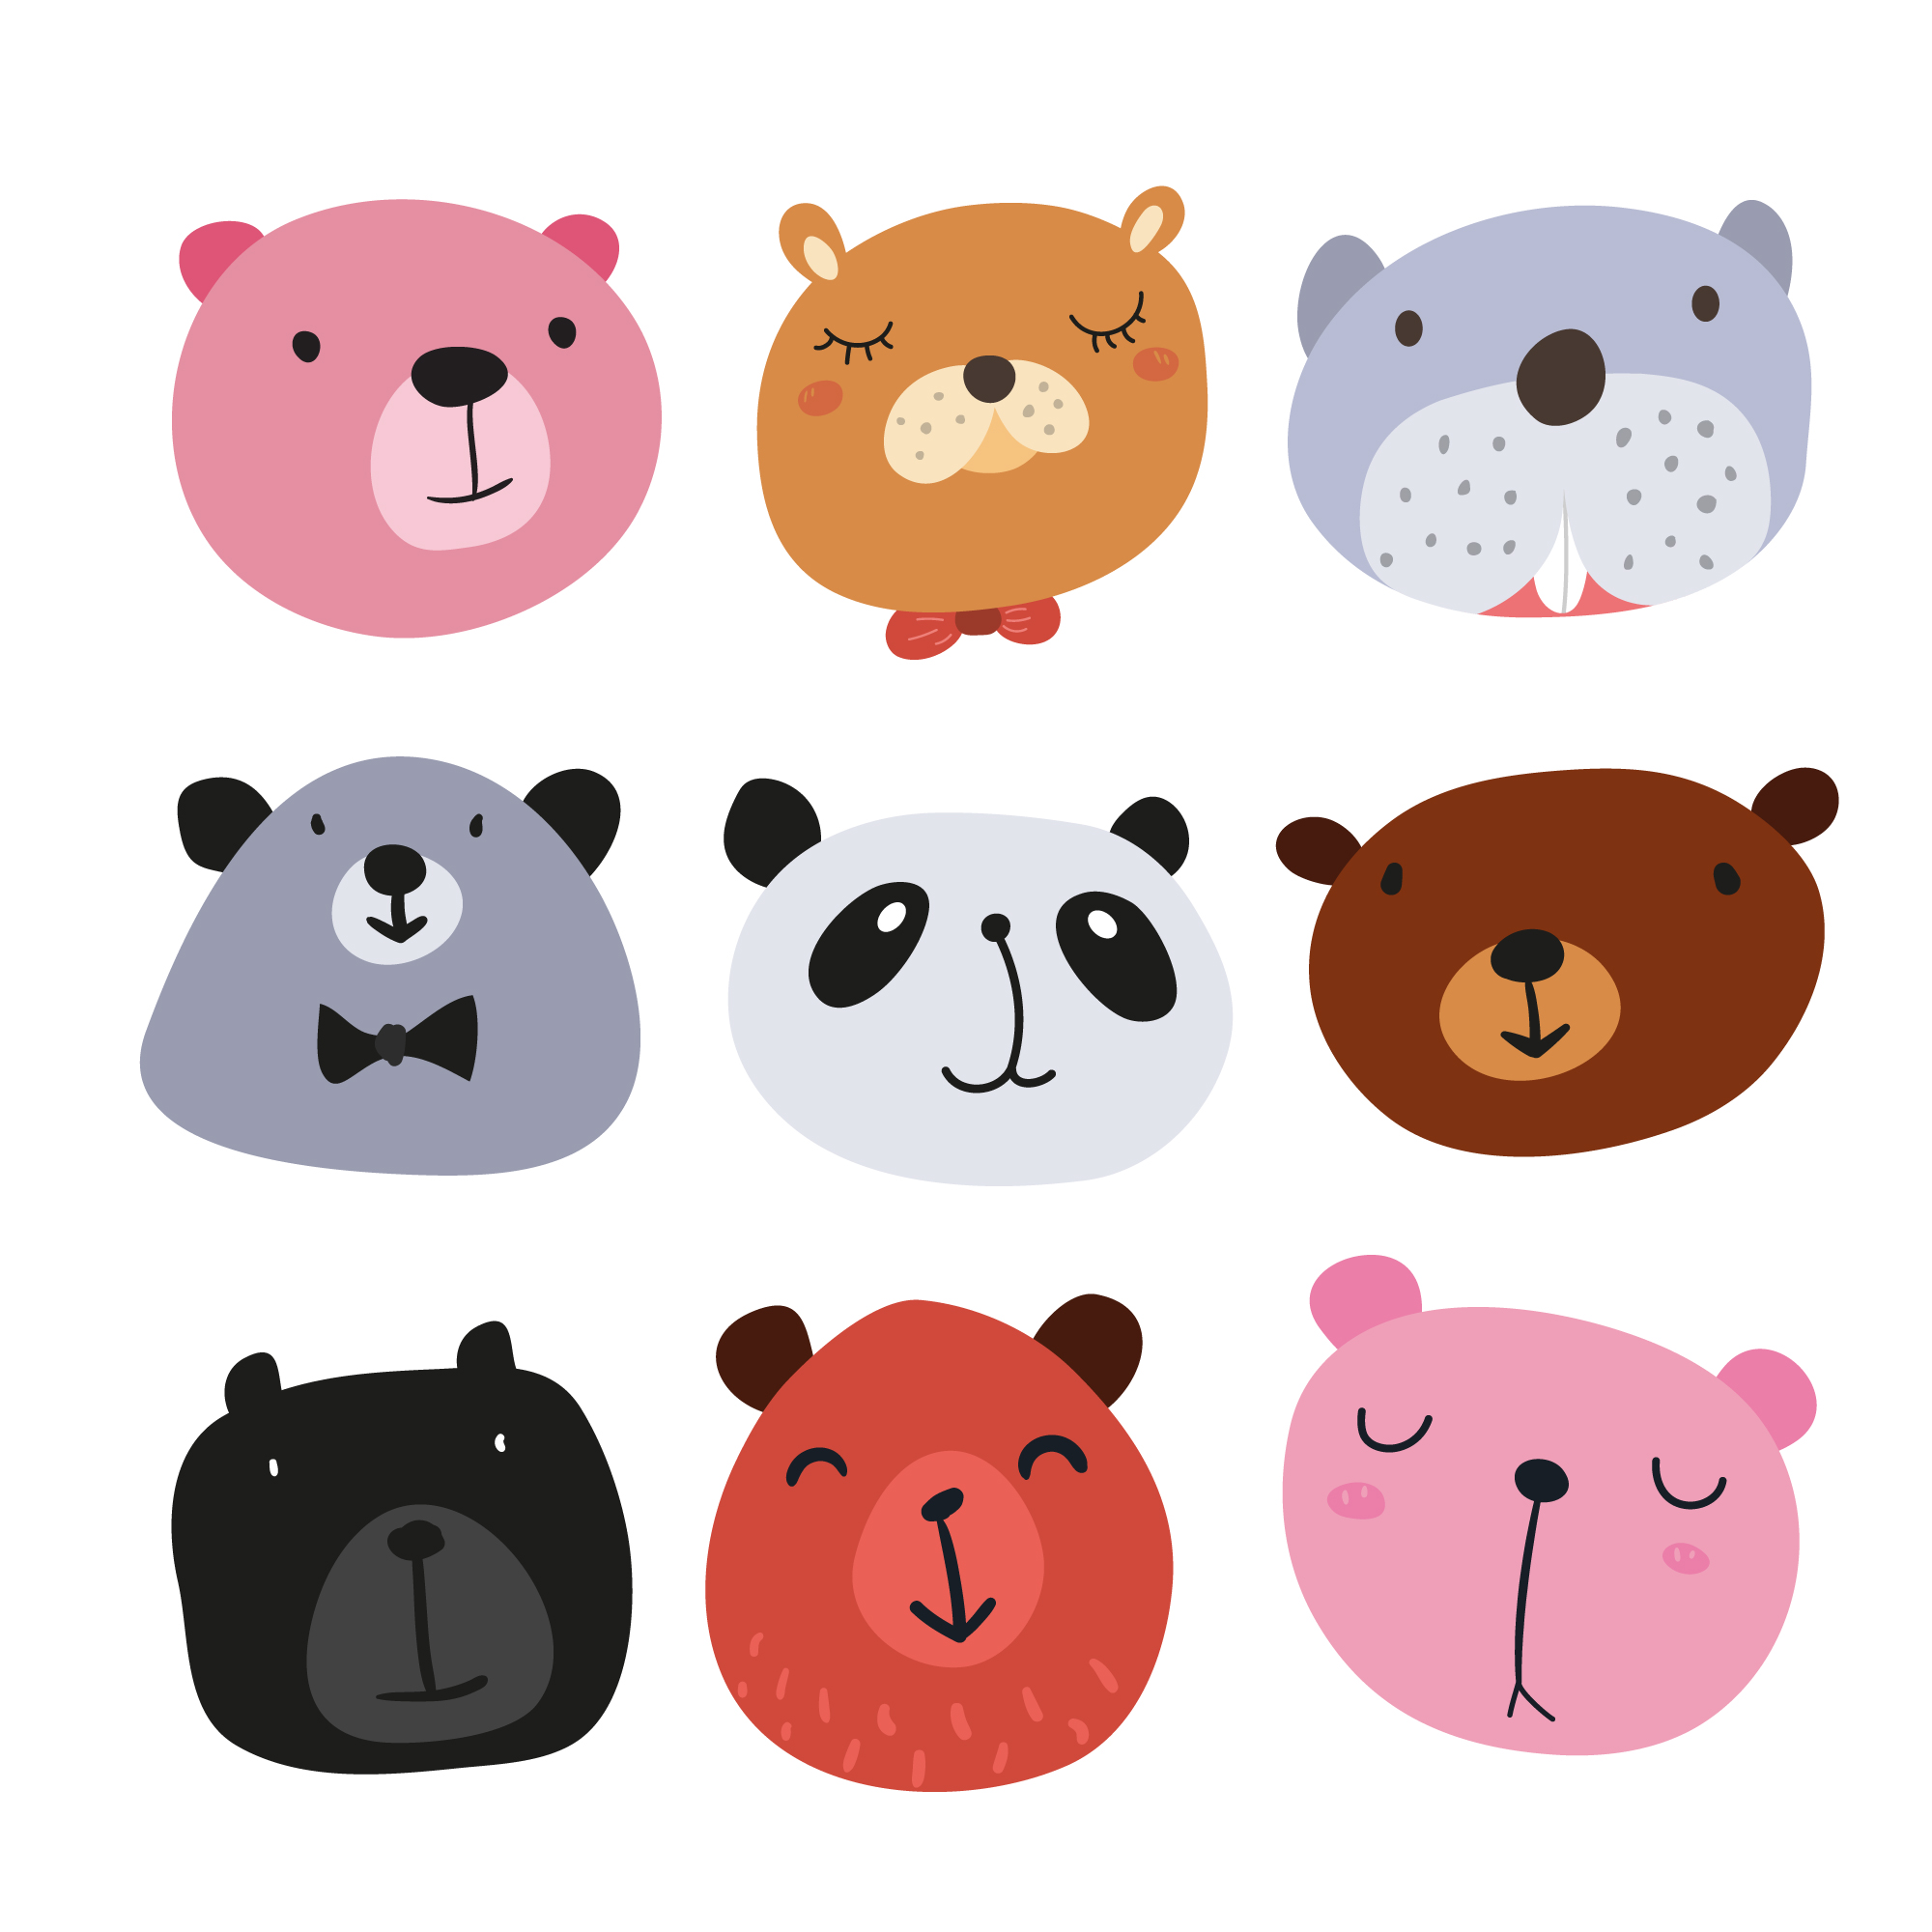 Bears illustration collection